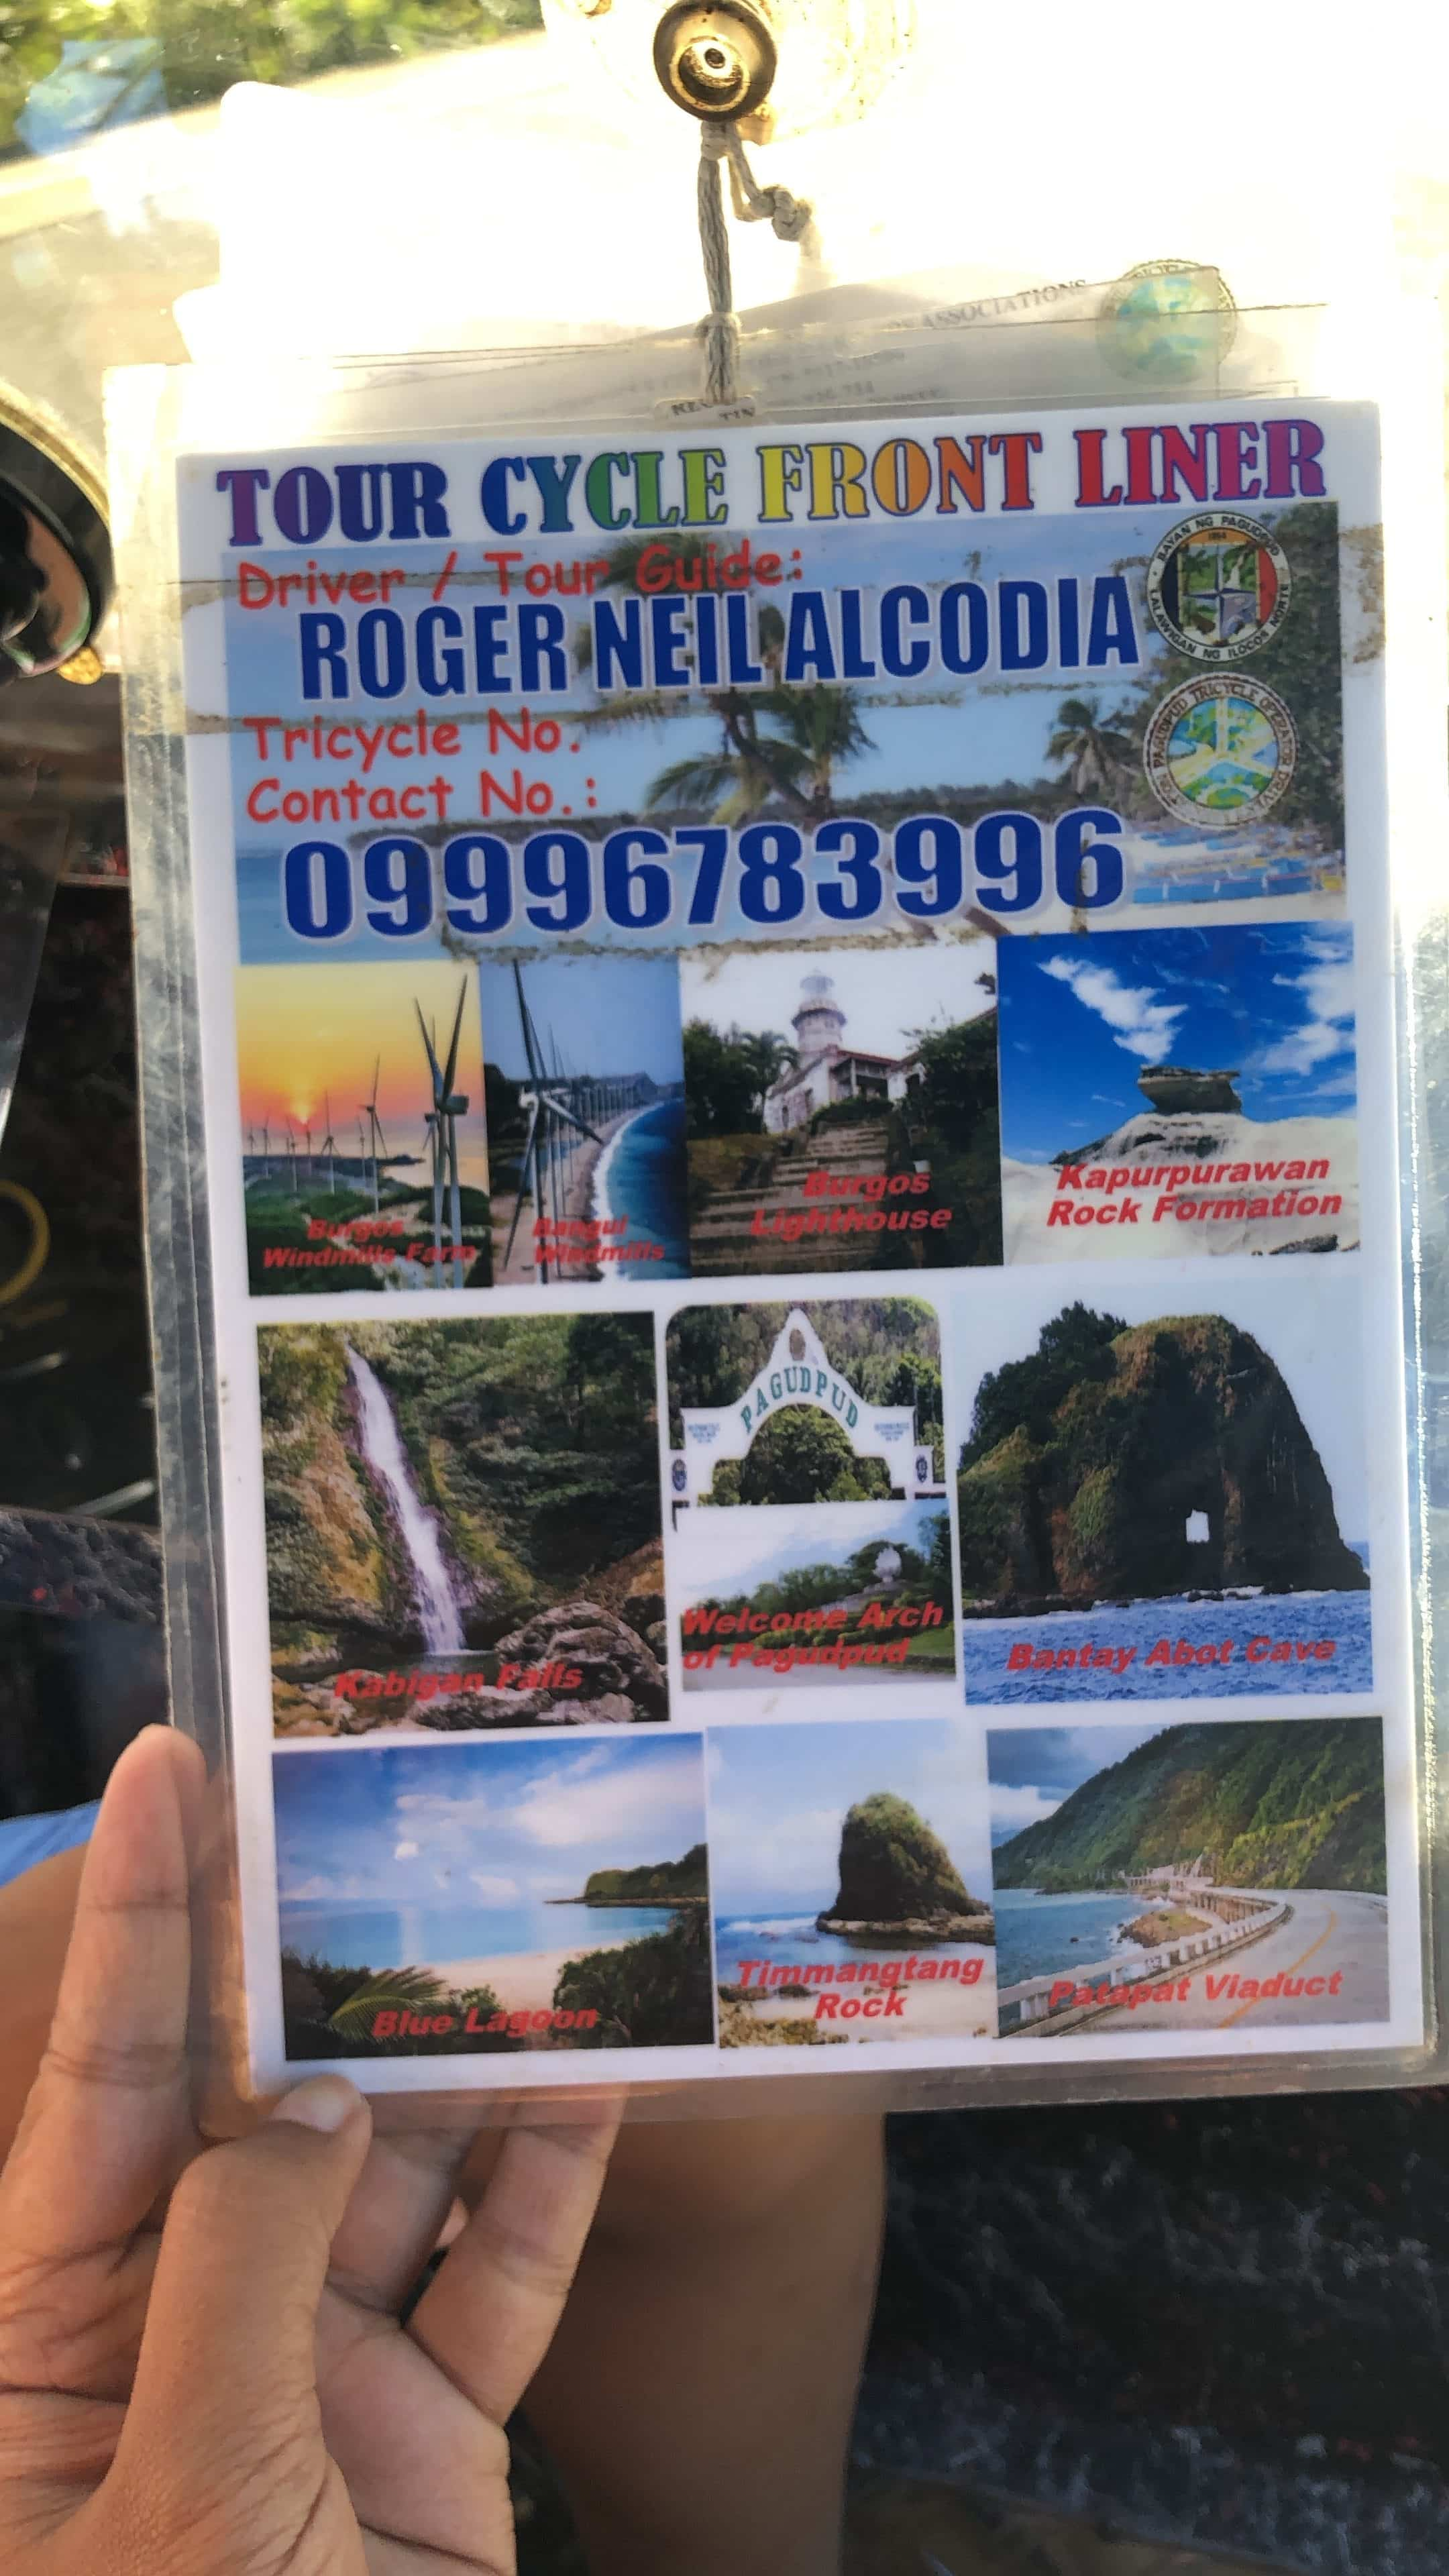 Things to do in Pagudpud, day tour in Pagudpud, laoag to pagudpud, LAOAG CITY TO PAGUDPUD, LAOAG TO PAGUDPUD BUS, LAOAG TO PAGUDPUD BUS FARE, laoag airport to pagudpud, laoag to pagudpud bus schedule